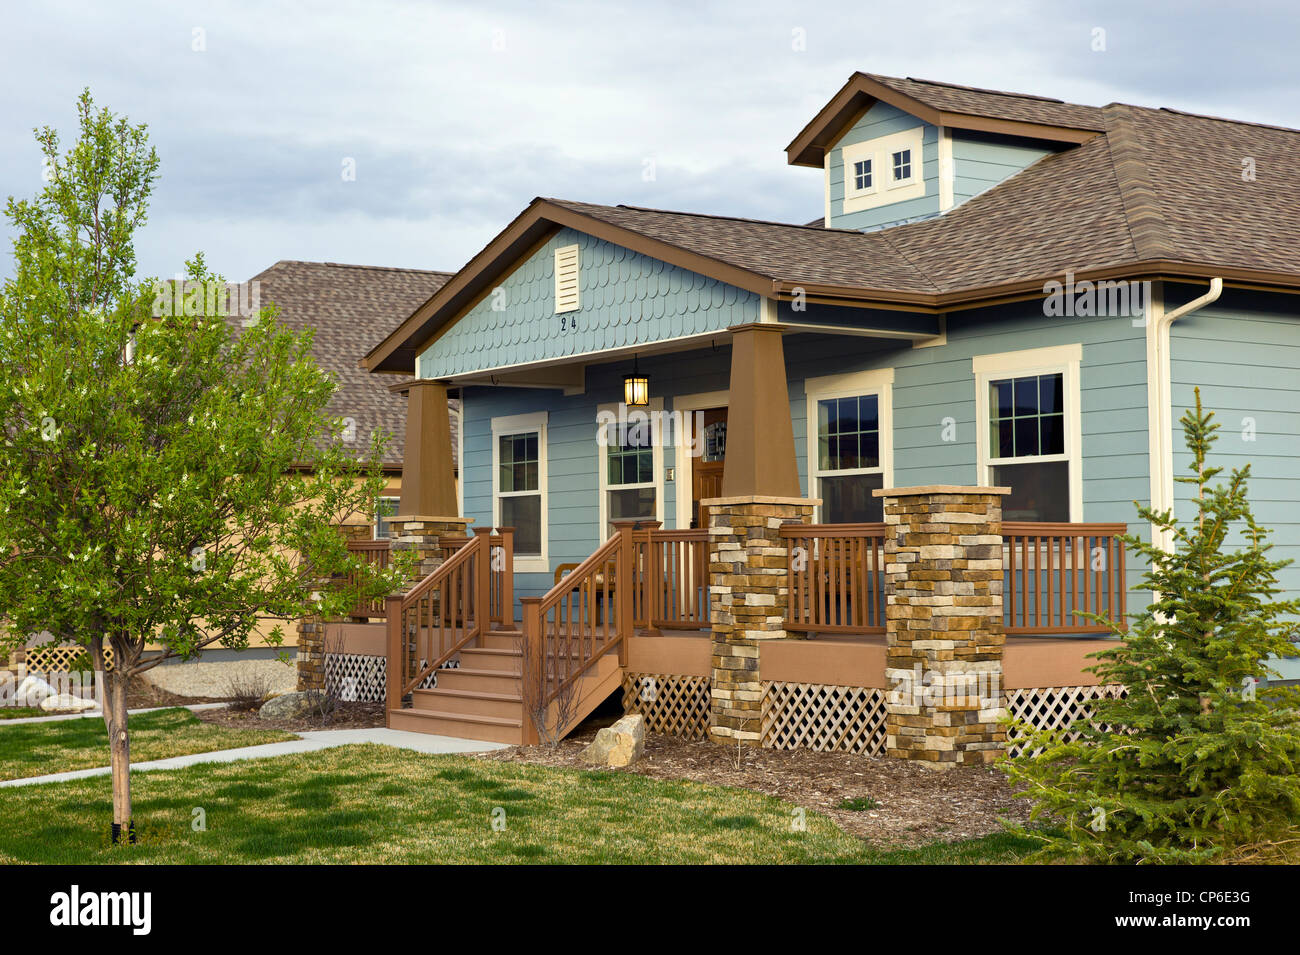 Craftsman style residential homes in colorado usa stock for Craftsman style log homes